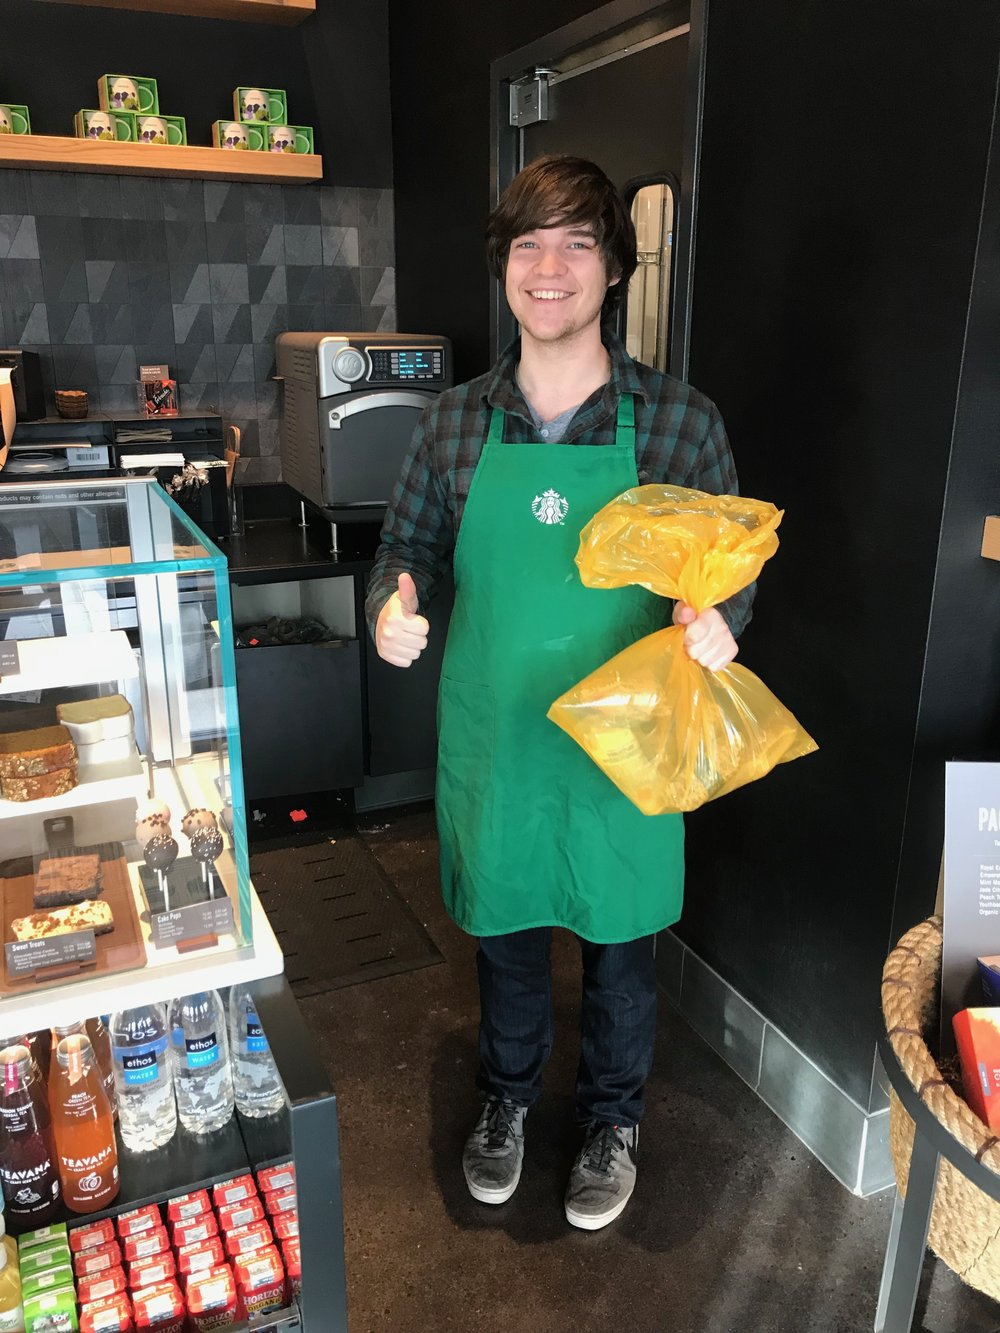 Our friends at Starbucks are always happy to hand off their donated food three times a week